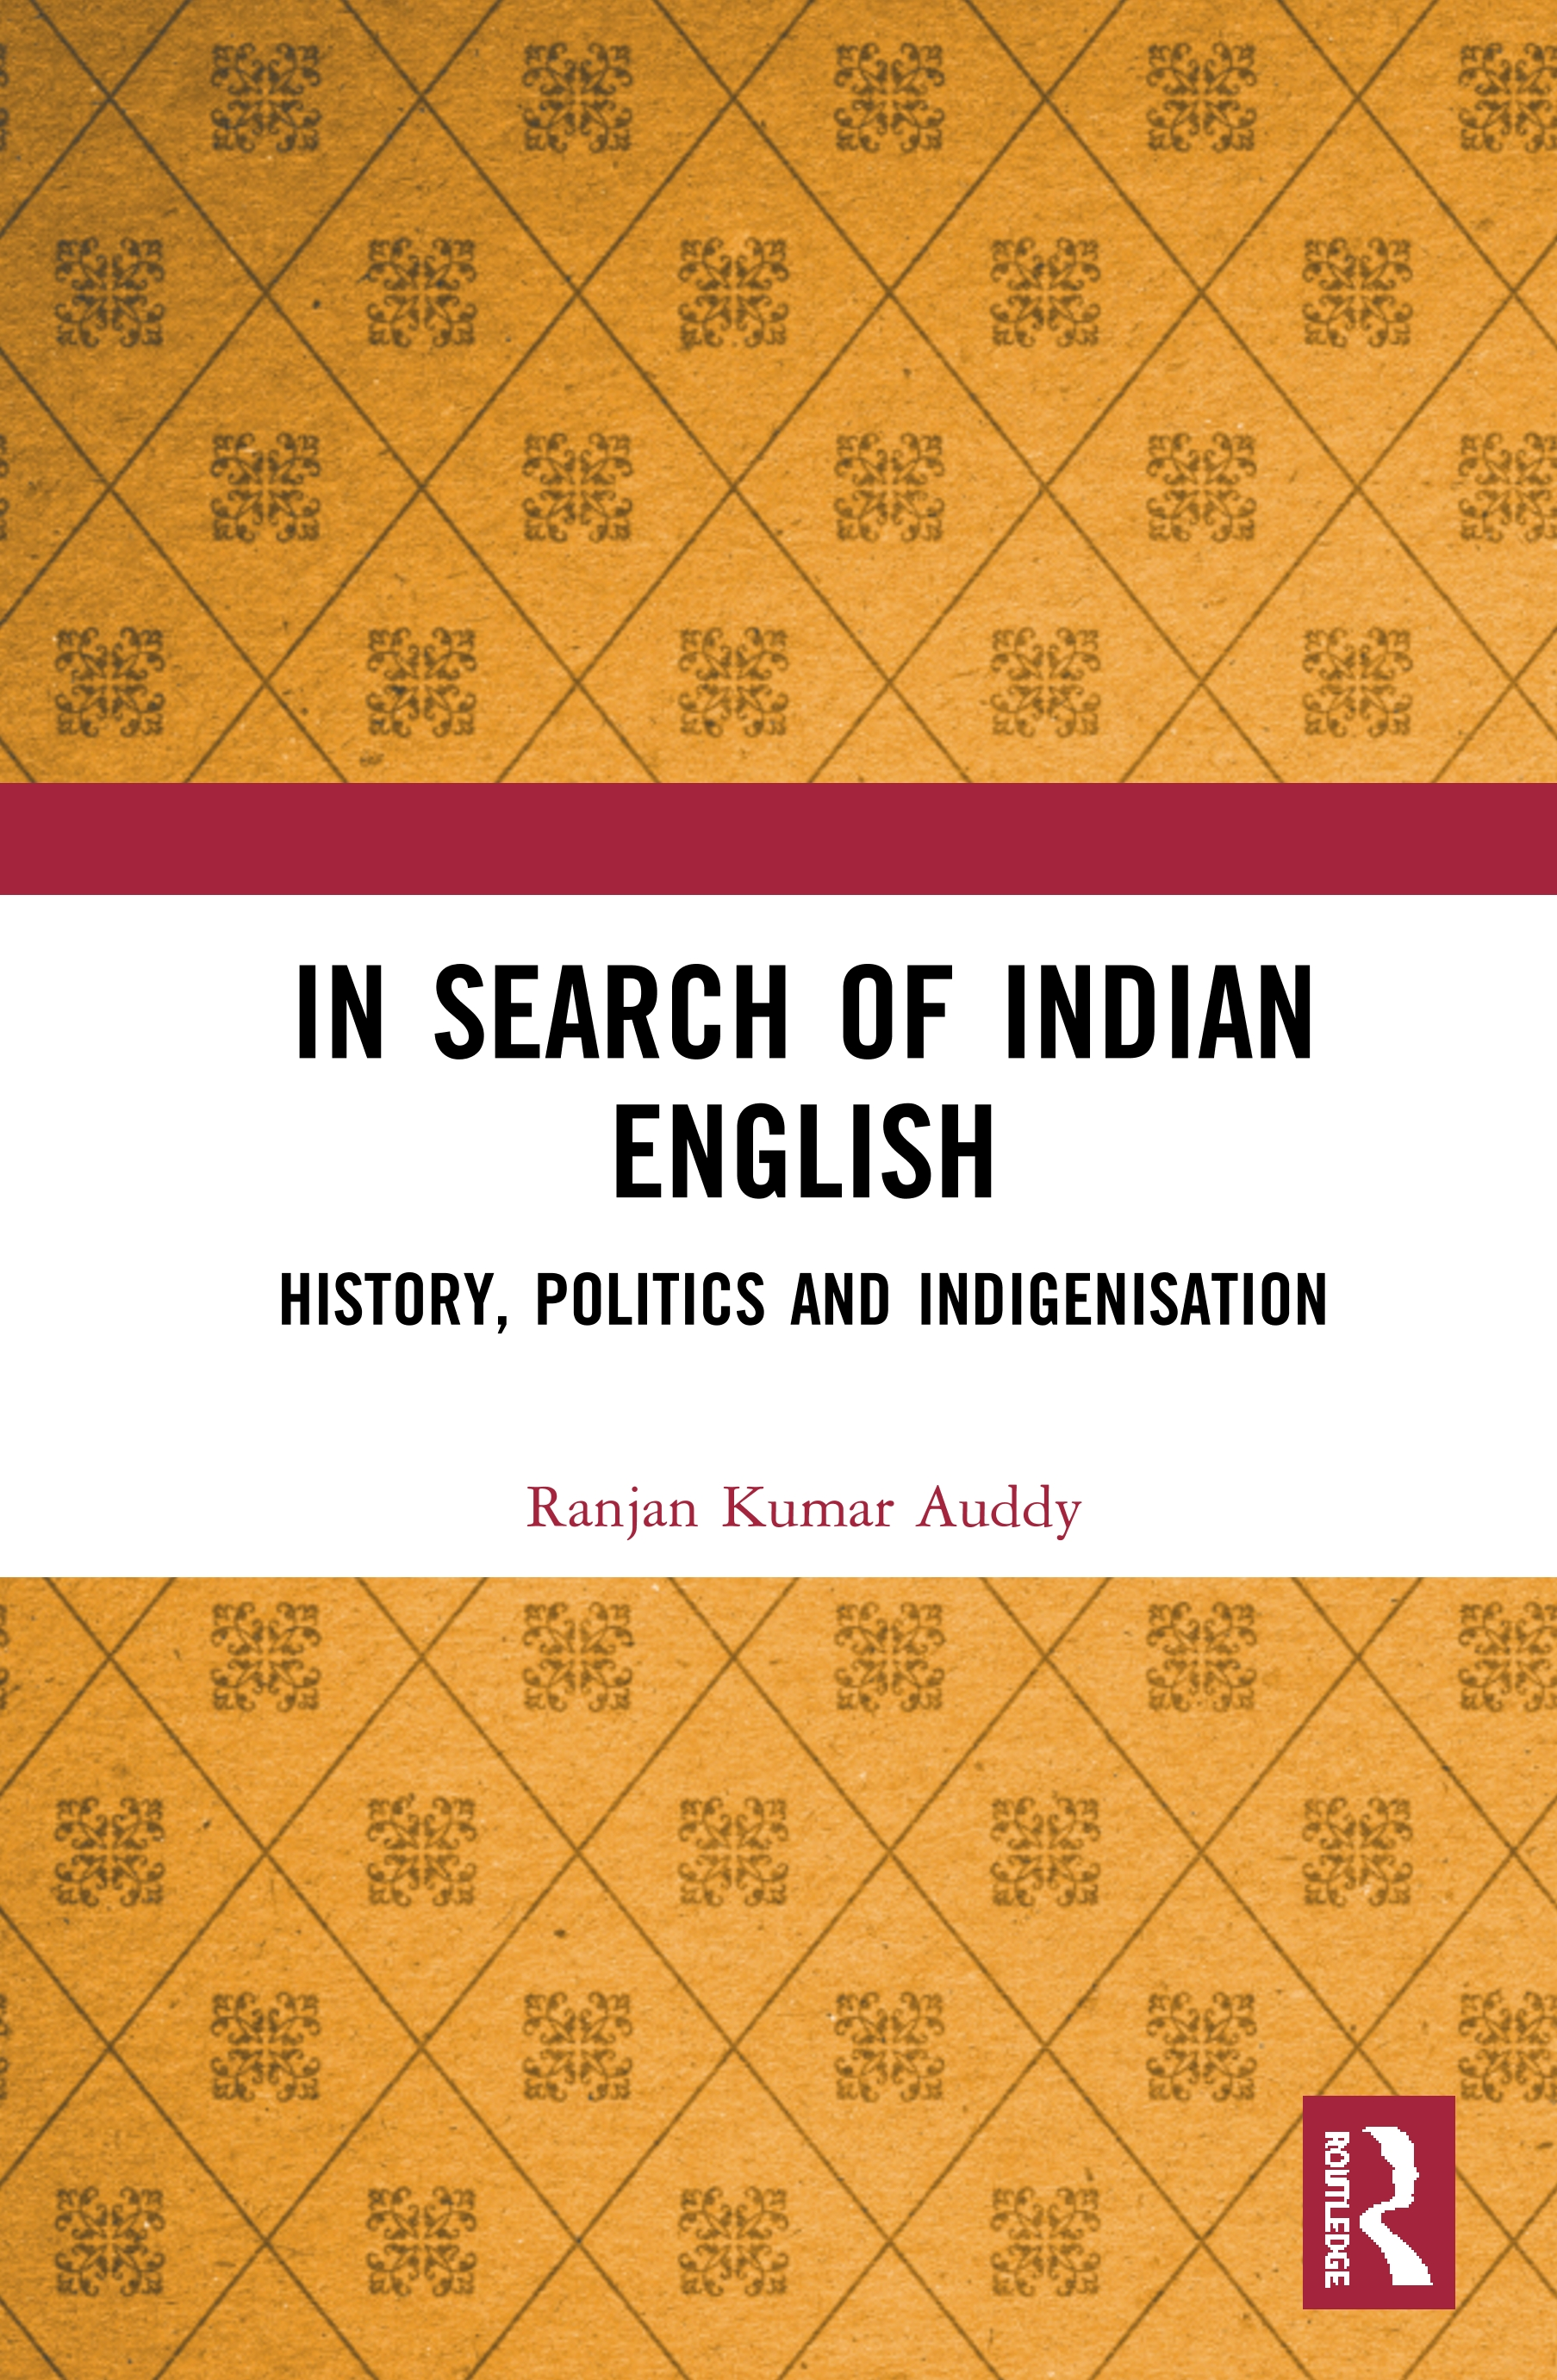 In Search of Indian English: History, Politics and Indigenisation book cover